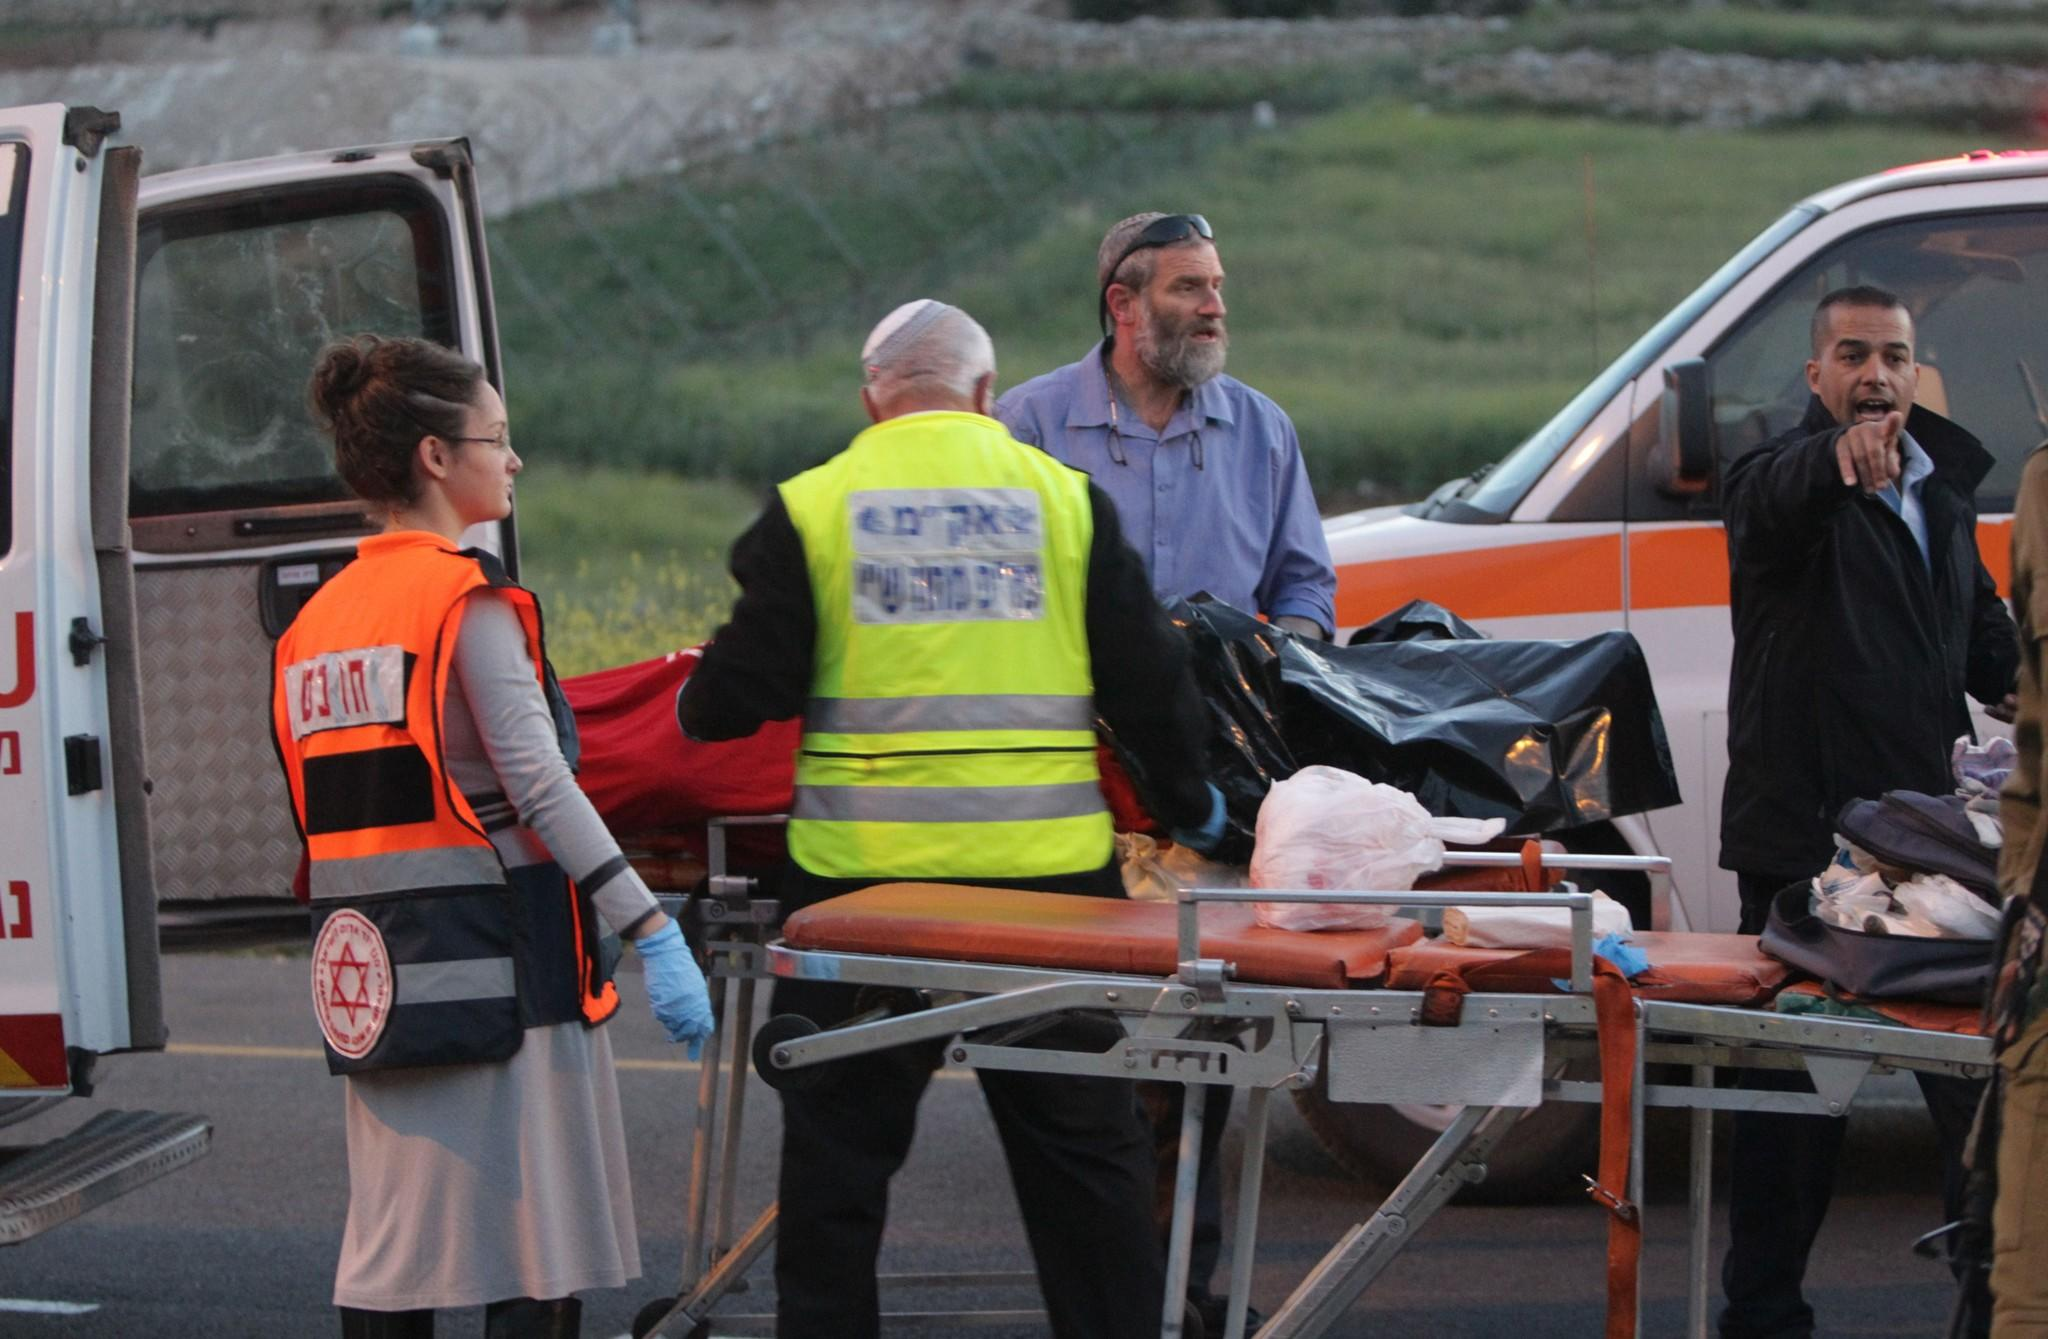 Israeli police and medical personnel load the body of an Israeli man into the back of an ambulance at the scene of a shooting near the southern West Bank city of Hebron.